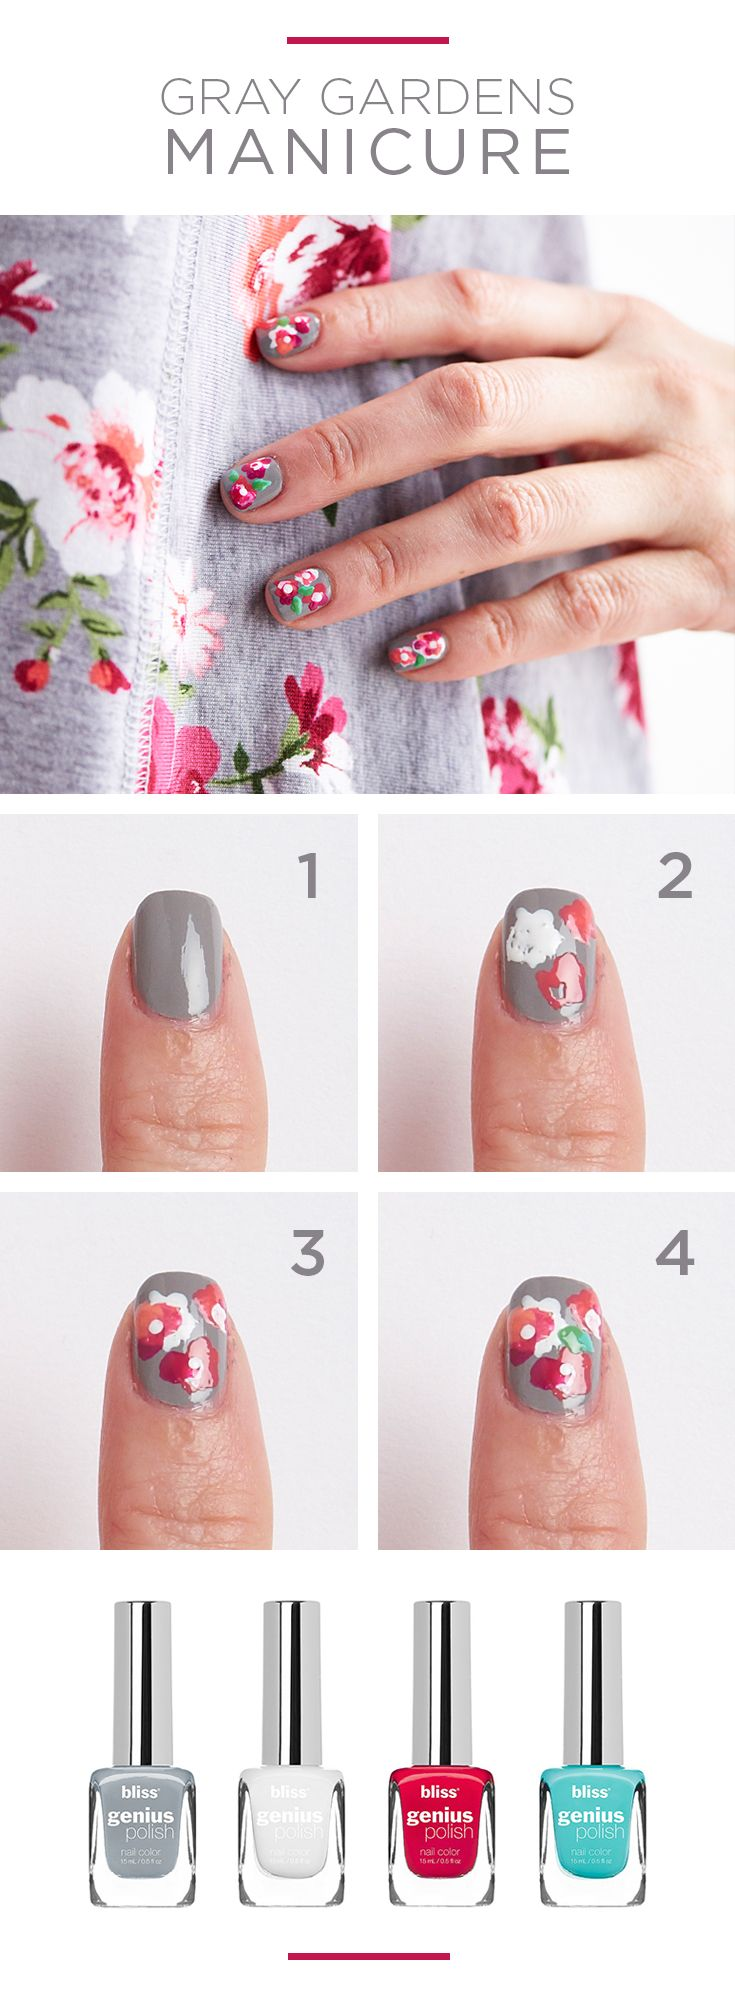 Try your hand at fresh floral nail art in just four easy steps. Perfect for the next garden party, this blooming manicure is inspired by summer's prettiest flower-print dresses. Featured bliss genius polish colors: What Do You Mink, All I Want for Crimson, Little White Lie and Jade to Order. Find bliss nail color and more at Kohl's.